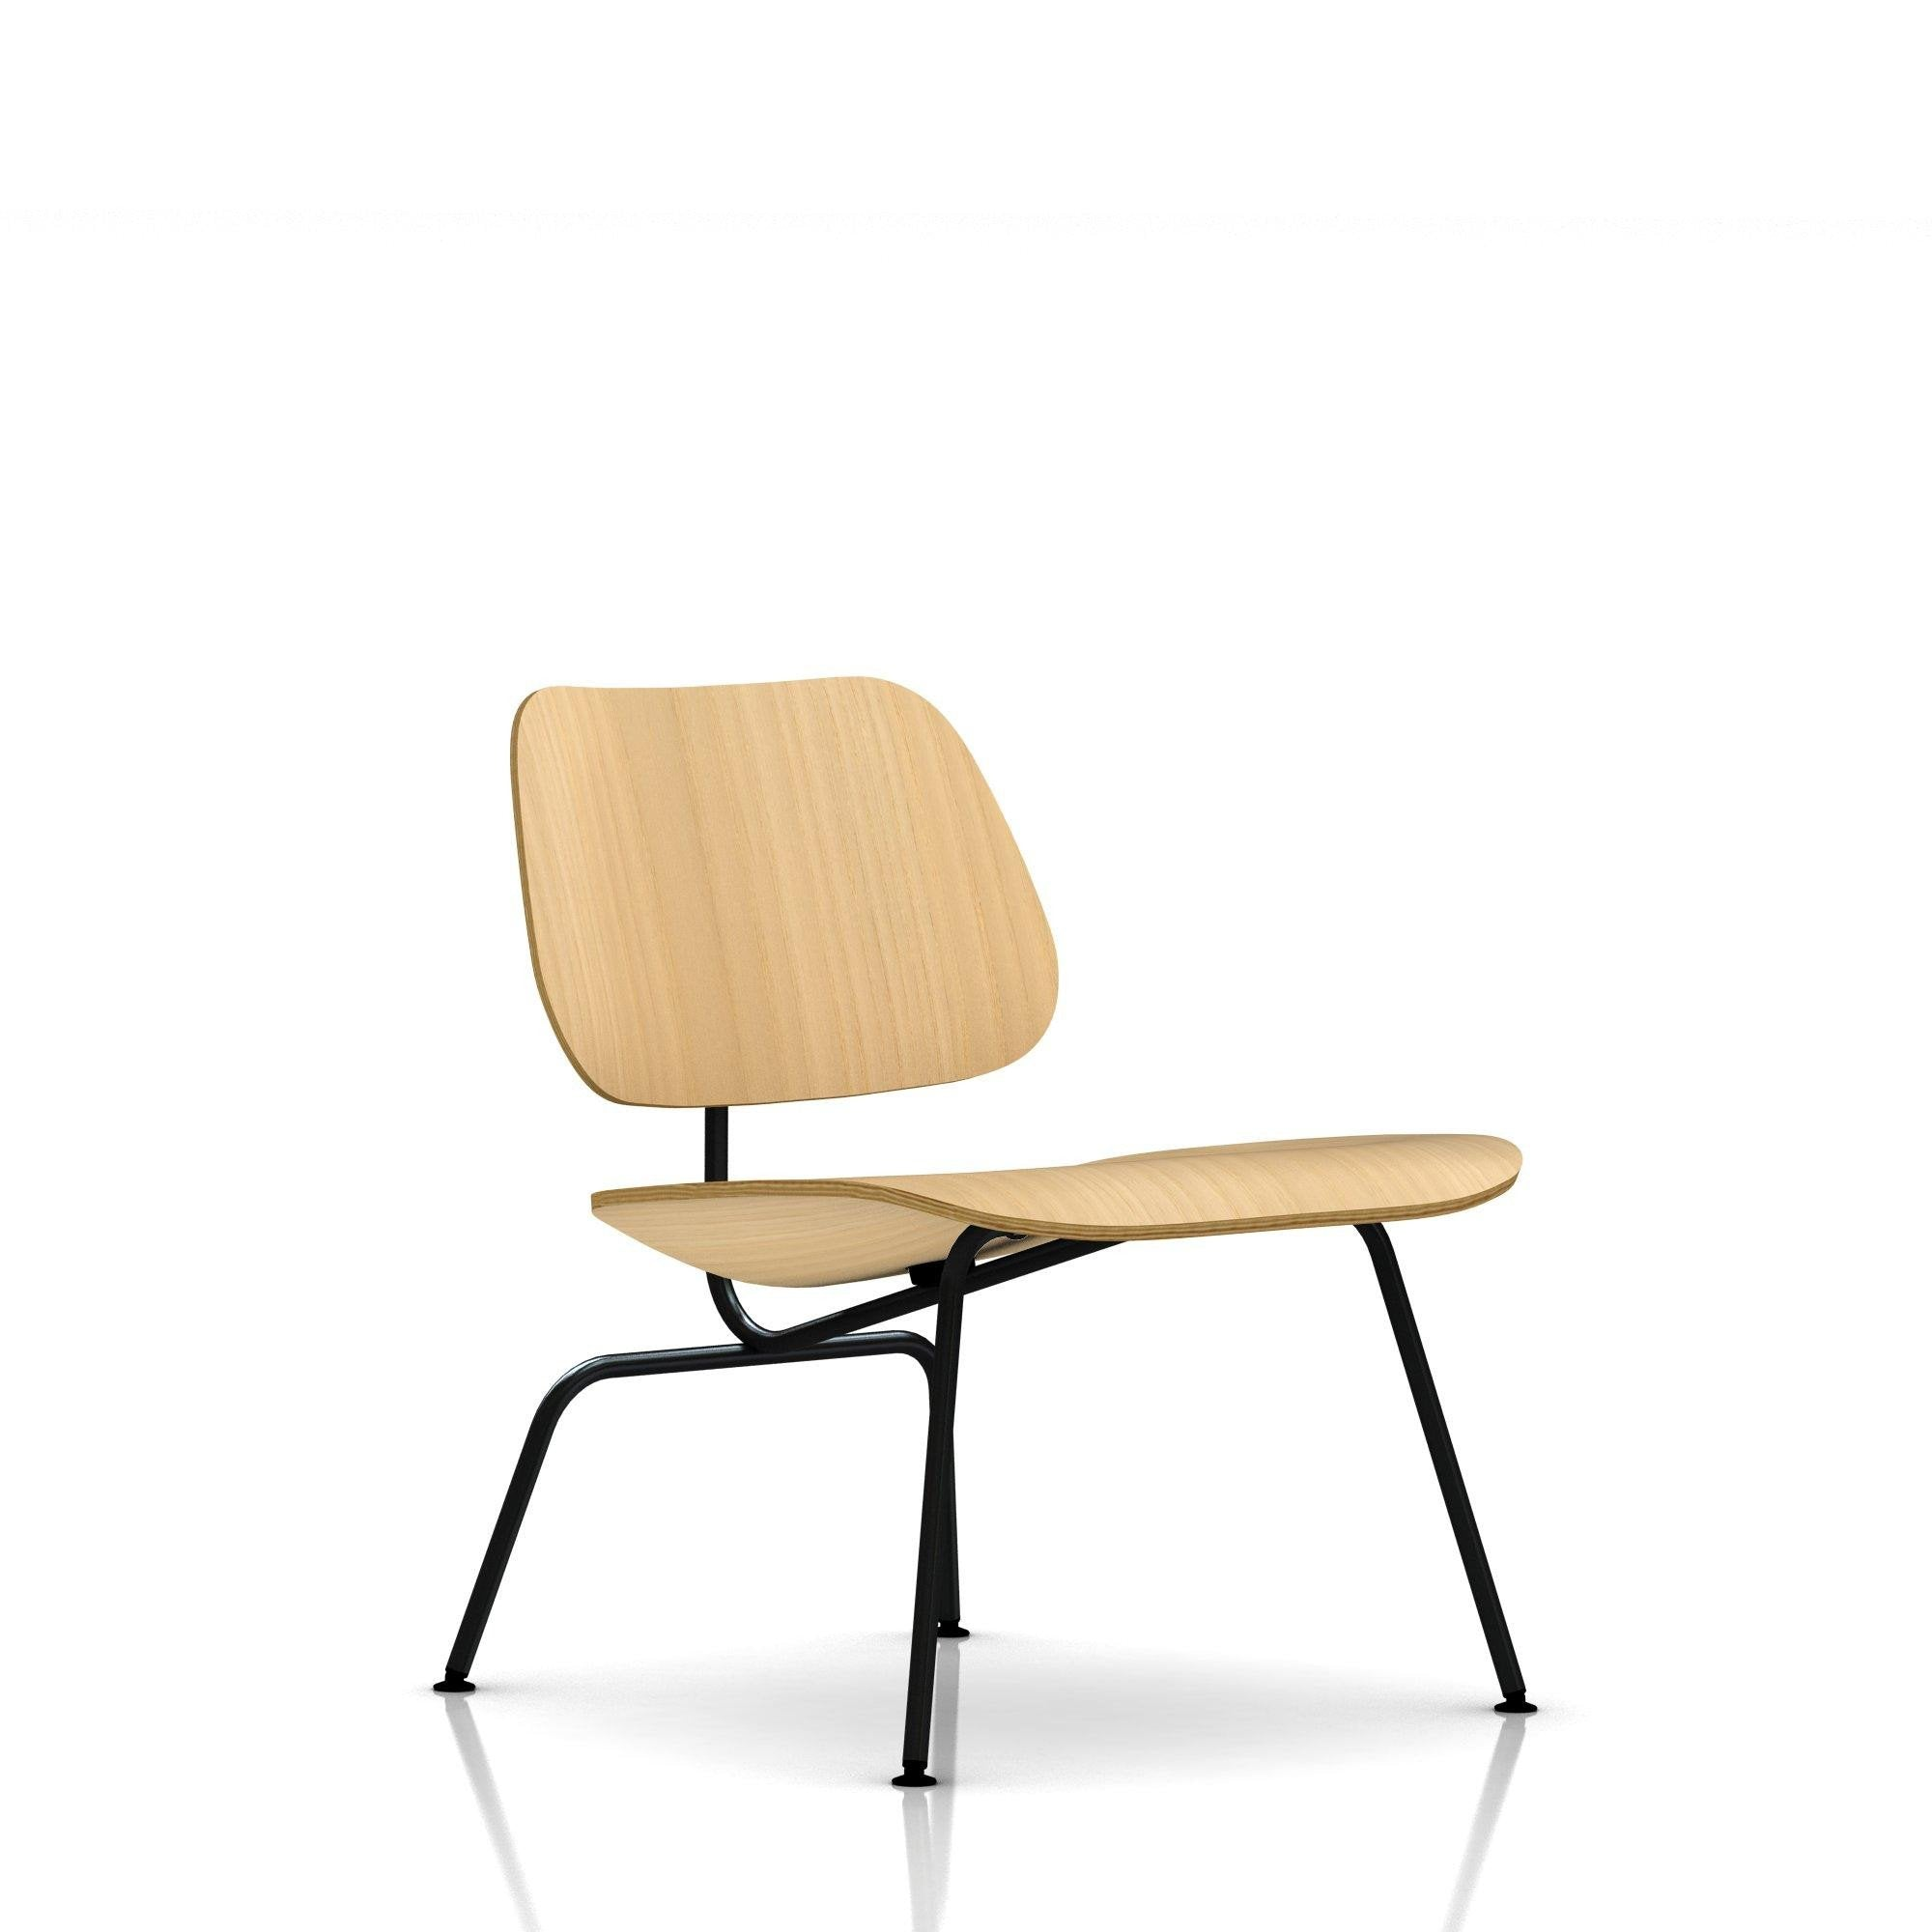 Eames 174 Molded Plywood Lounge Chair Metal Base By Herman